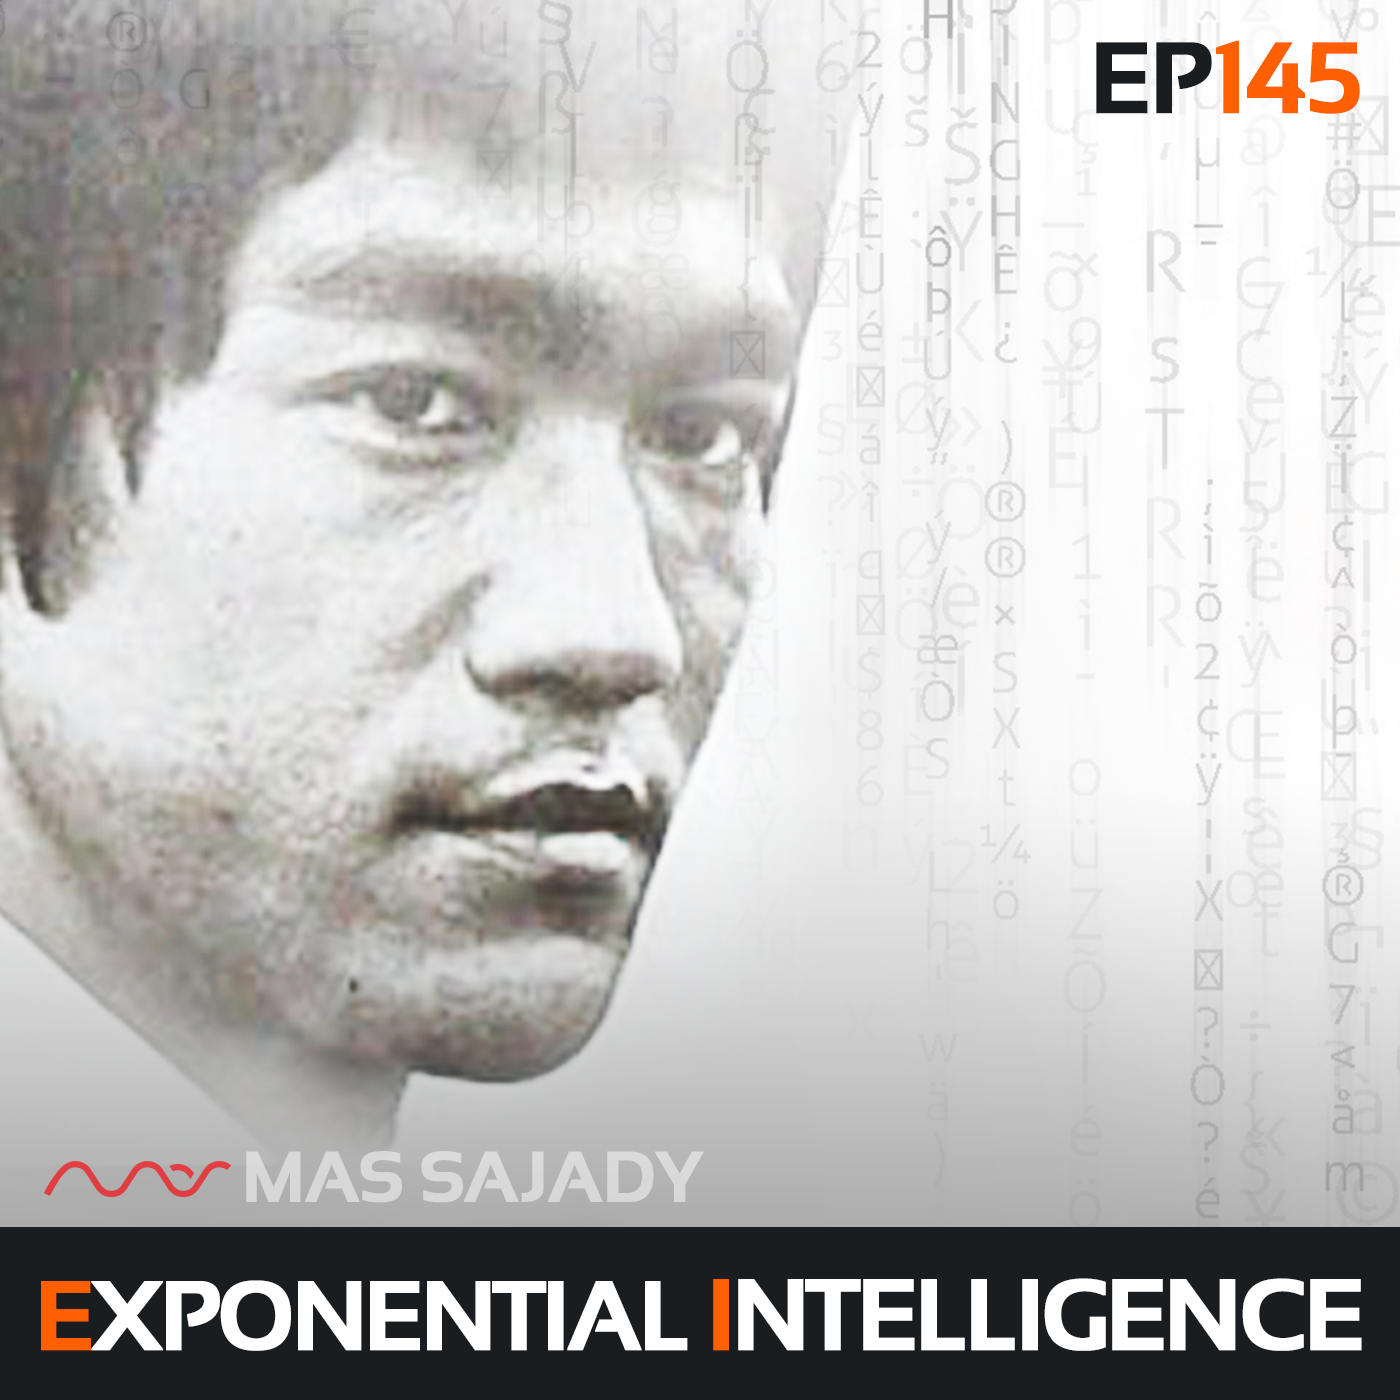 mas-sajady-exponential-intelligence-podcast-145-bruce-lee-live-conversations-with-dead-people.png